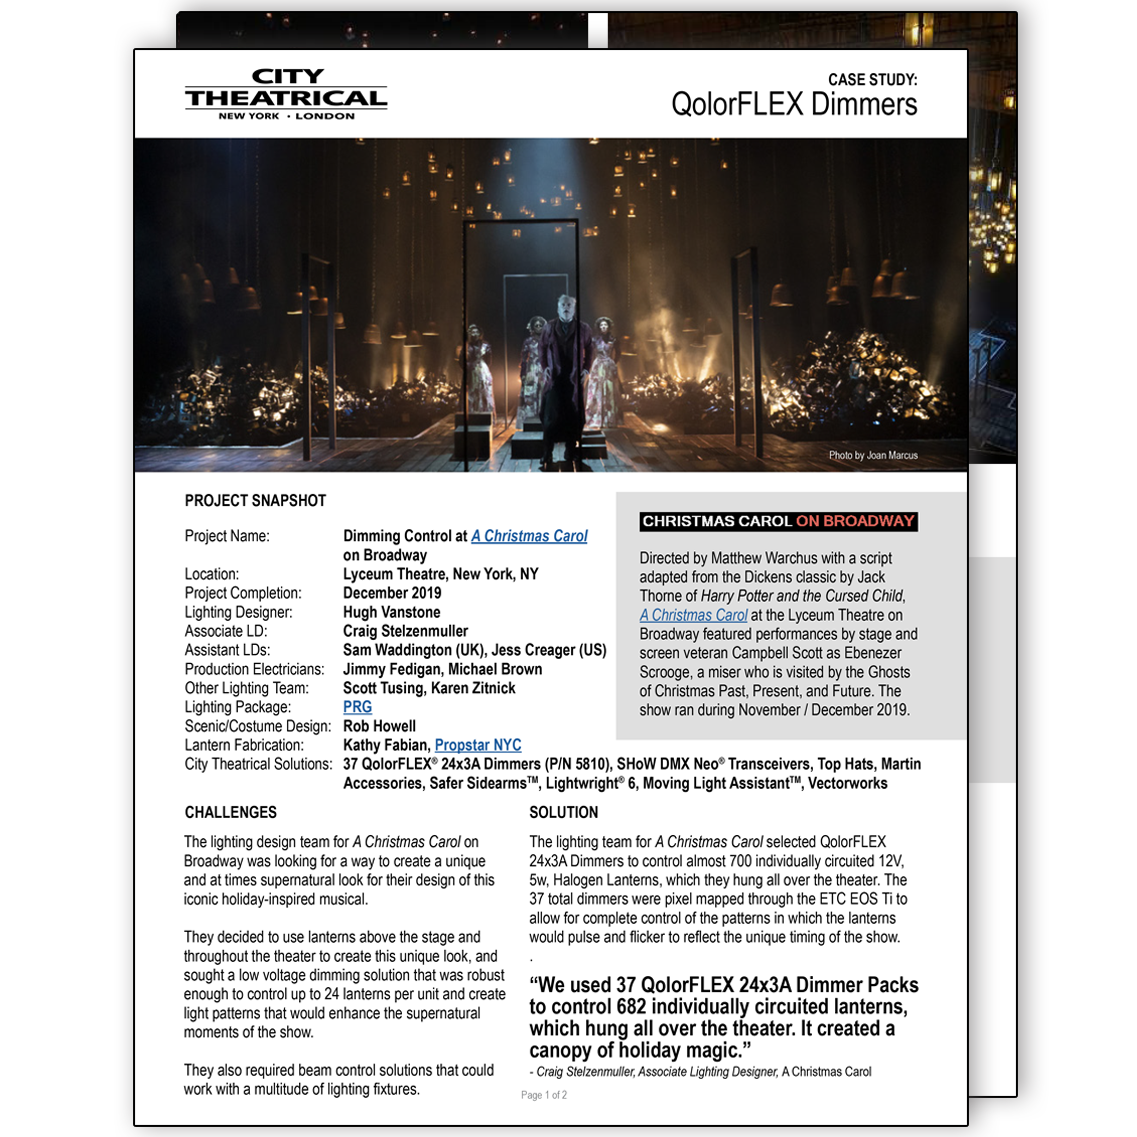 QolorFLEX Dimmers at A Christmas Carol on Broadway